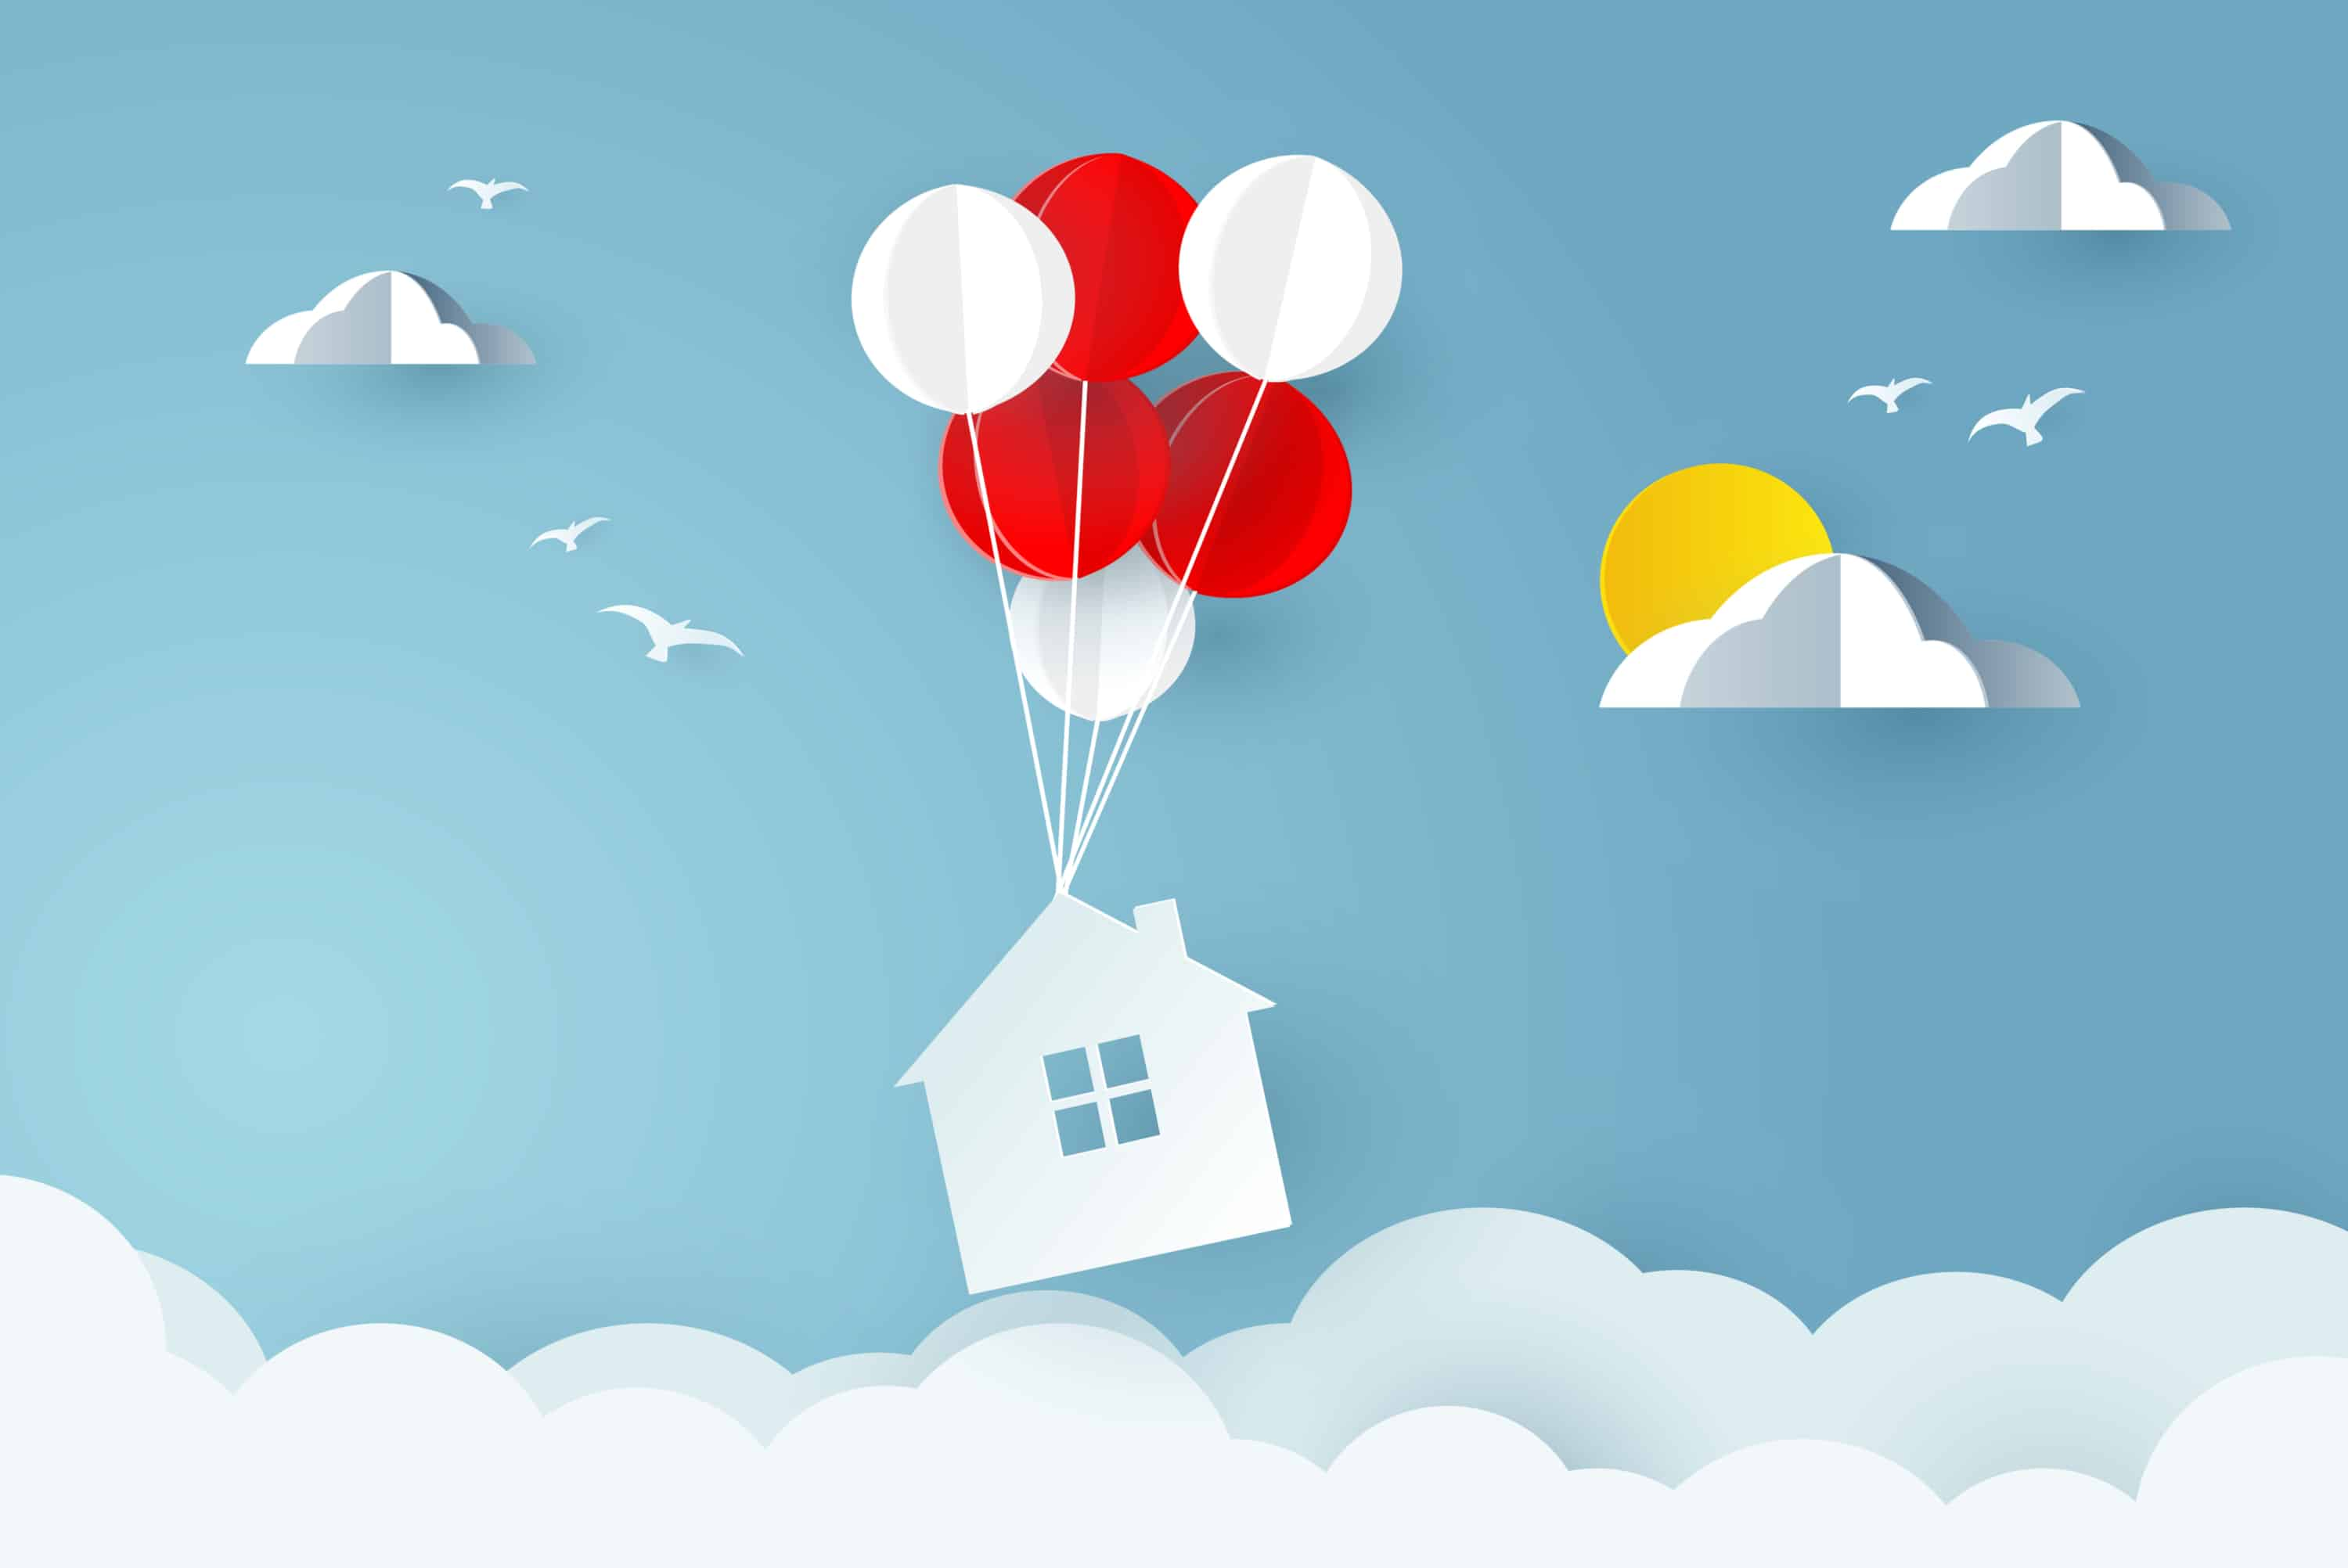 balloon house mortgage